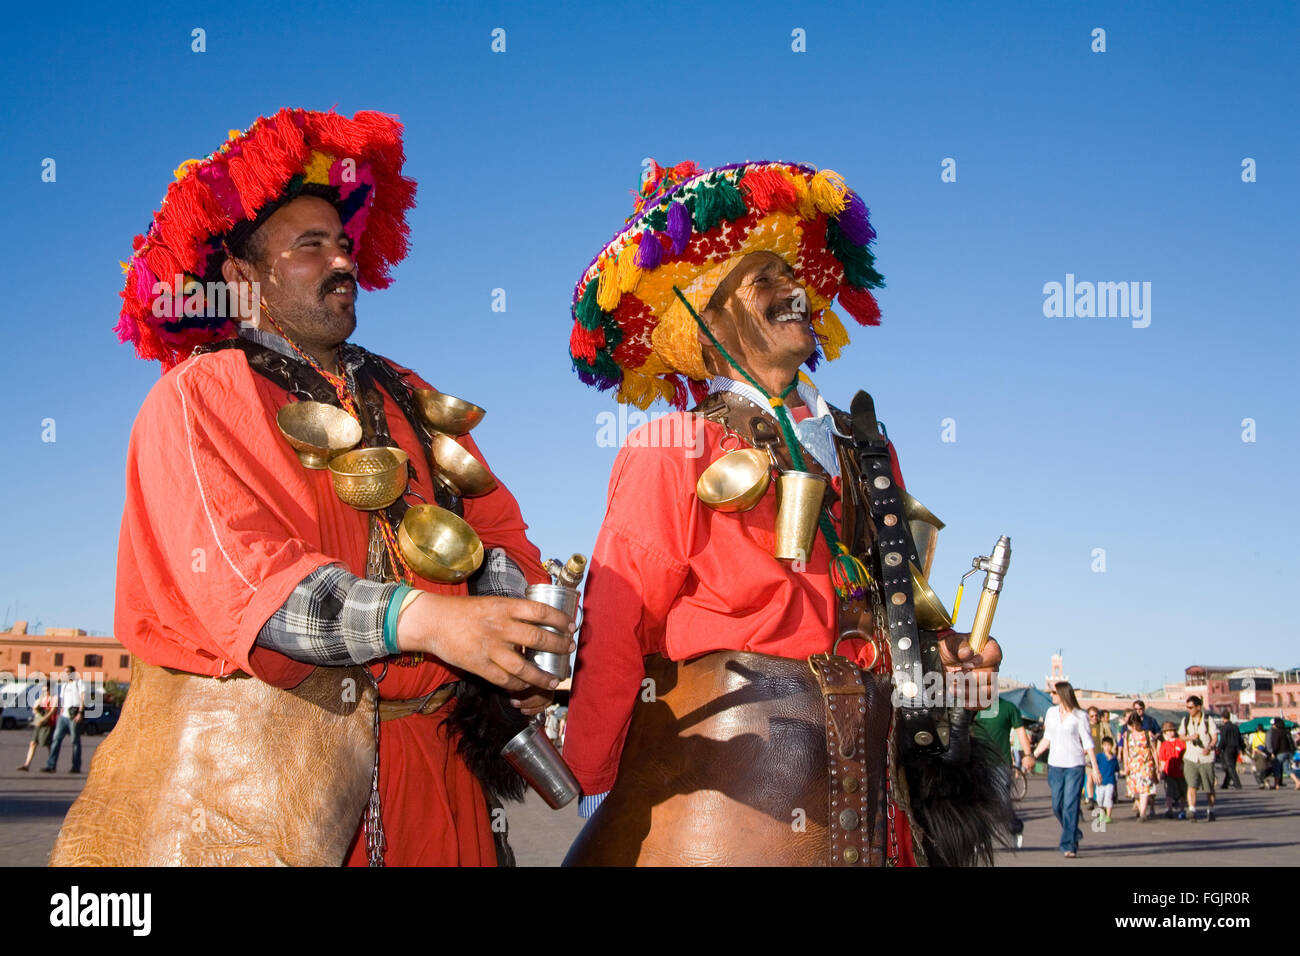 Traditional 'Water Sellers'   in Jemaa El Fna Square in Marrakech - Stock Image